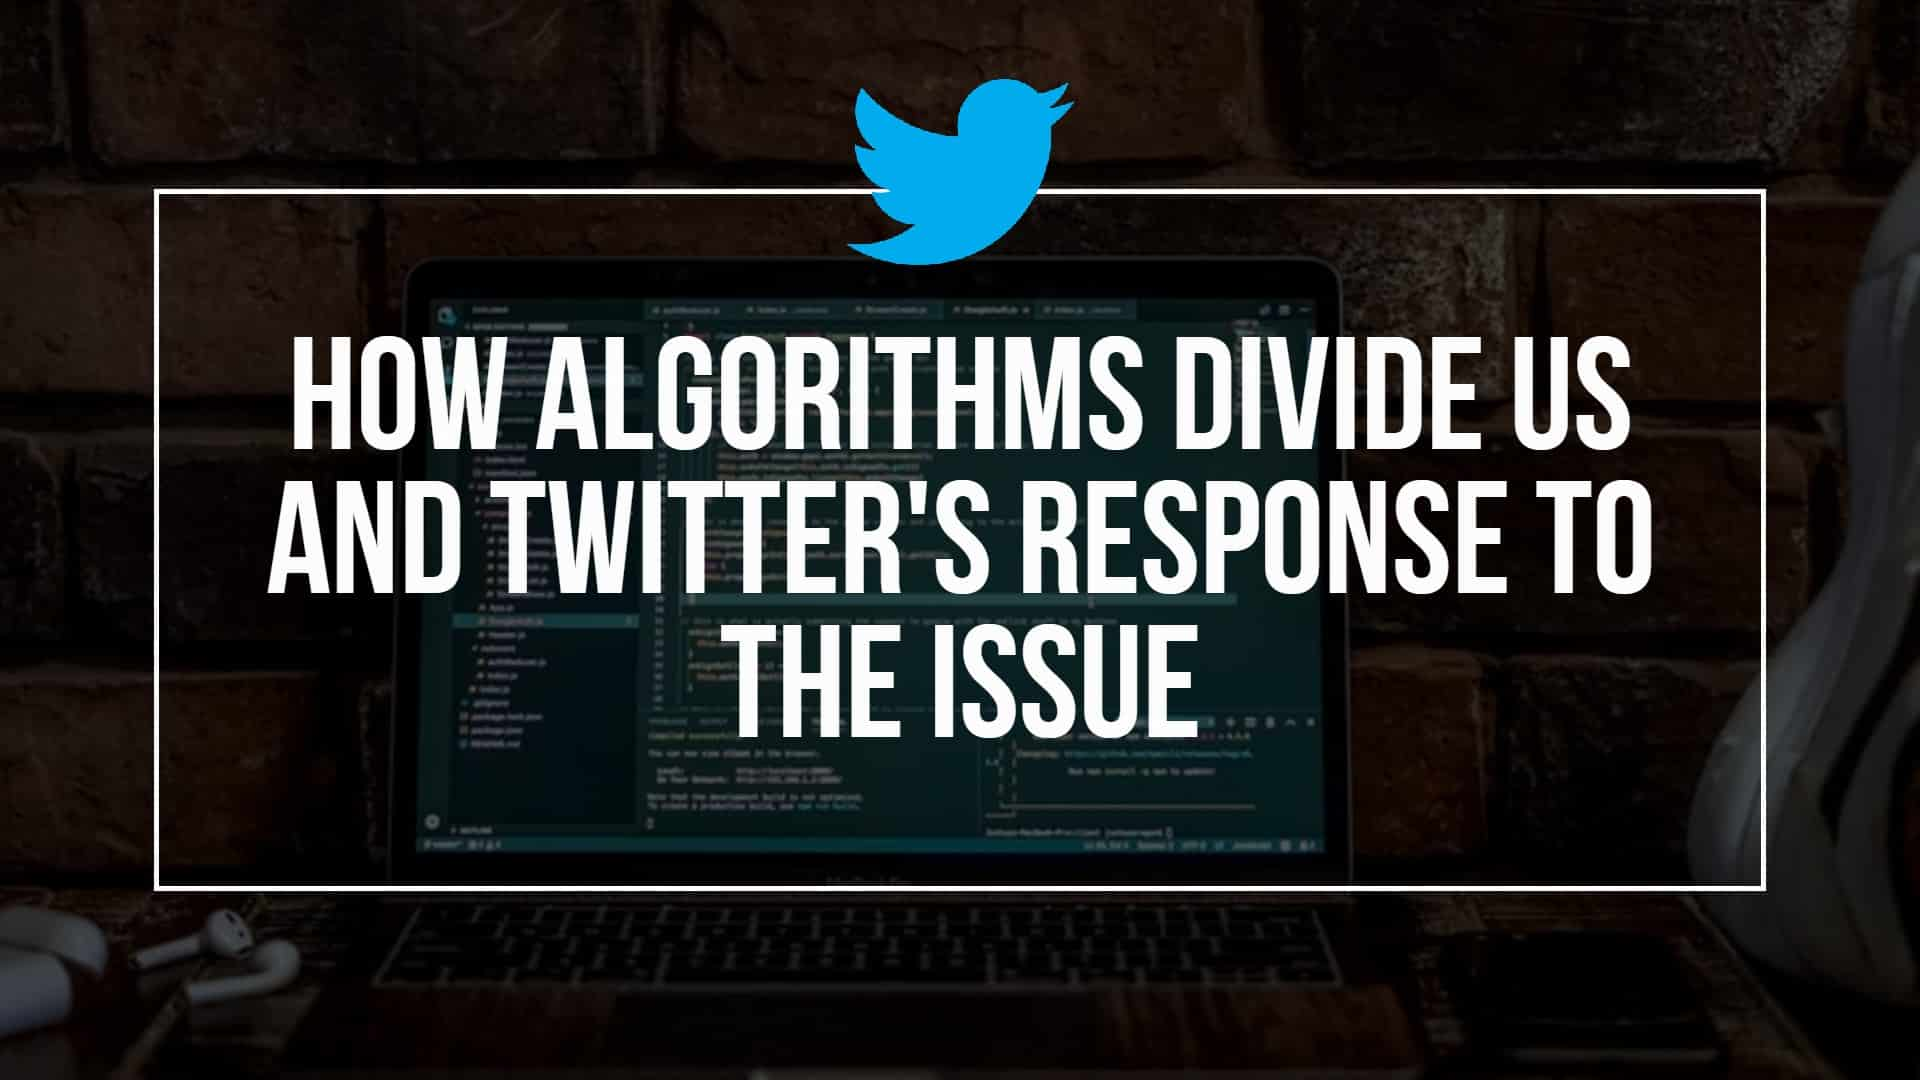 How Algorithms Divide Us And Twitter's Response To The Issue